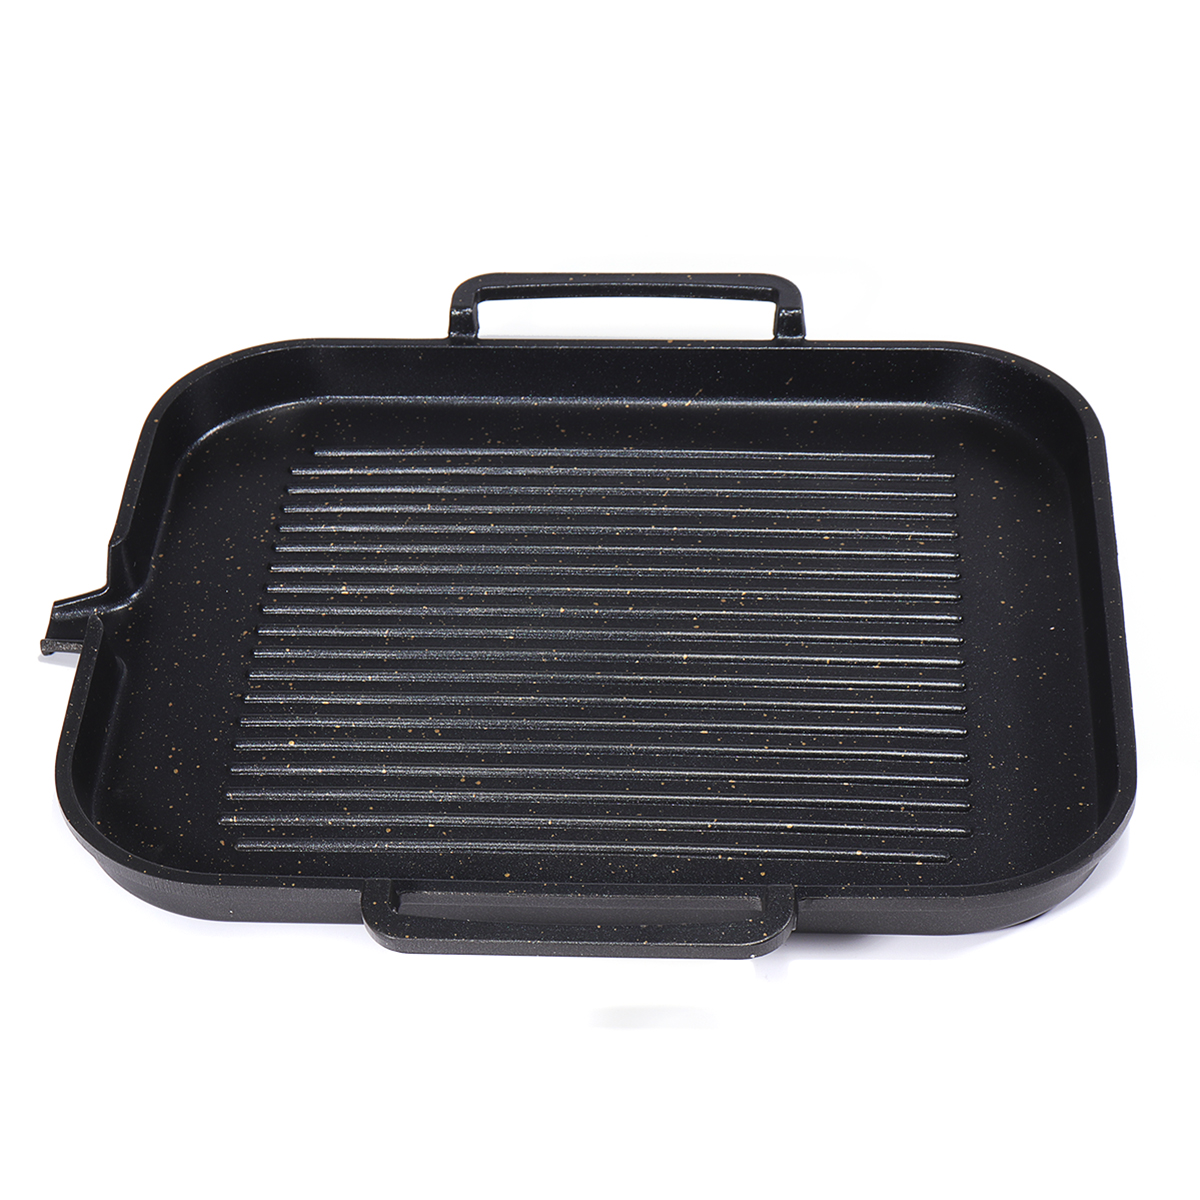 Grill Frying Pan 2 4 People Bbq Barbecue Aluminum Frying Grill Pan Plate Non Stick Coating Cookware Induction Cooking